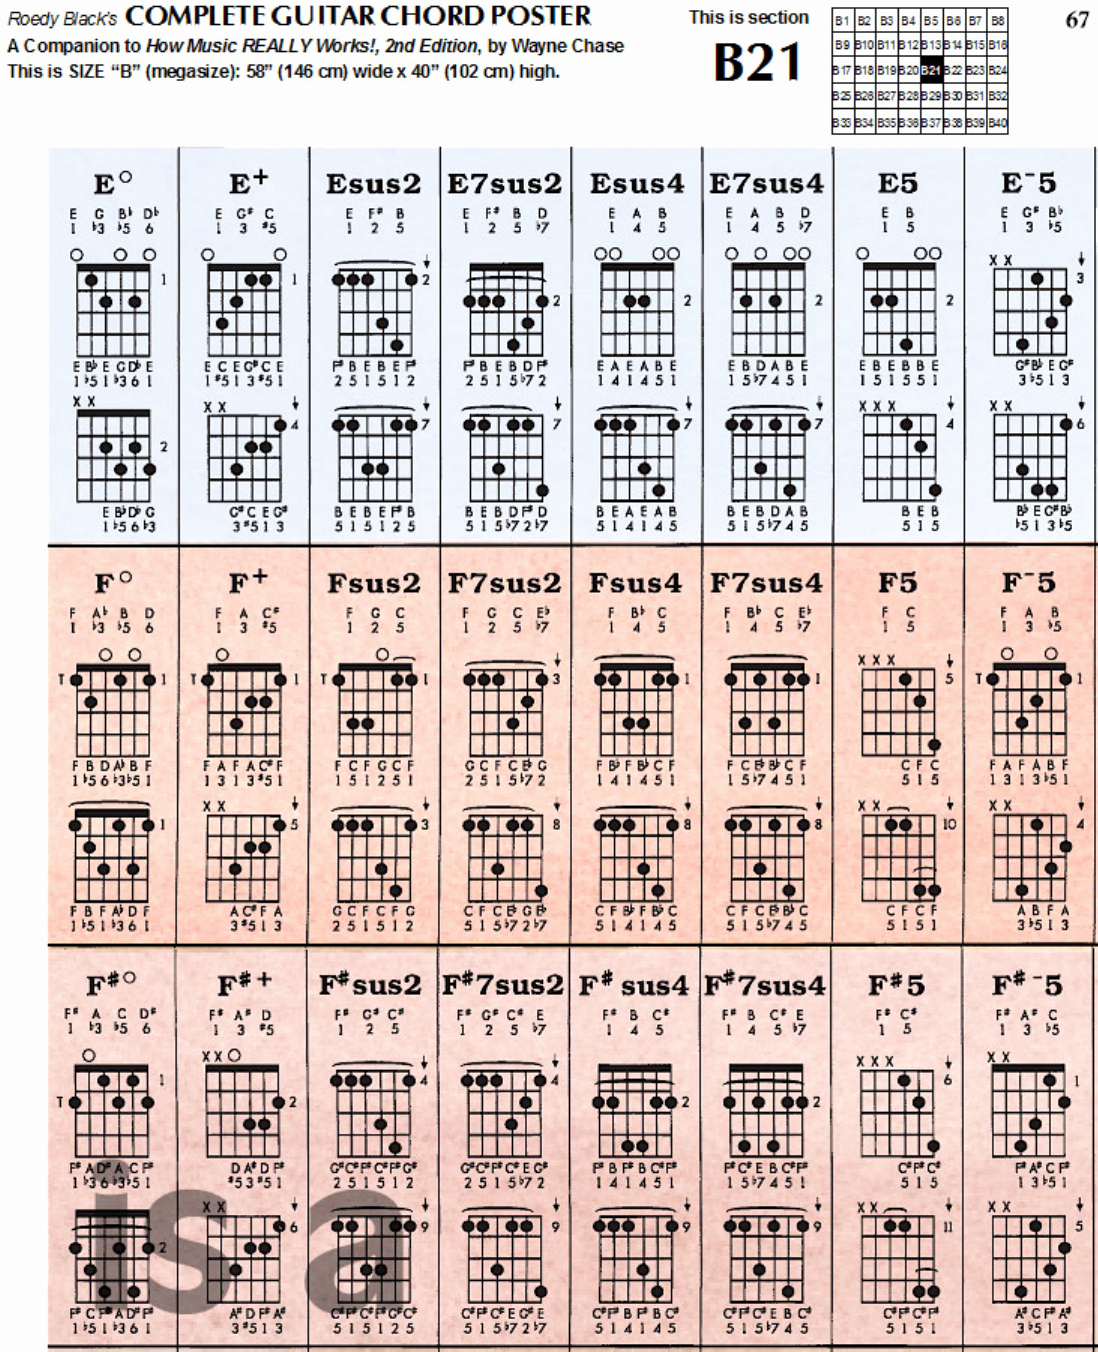 Complete Guitar Chords Charts Lovely Download Plete Guitar Chord Chart Template for Free